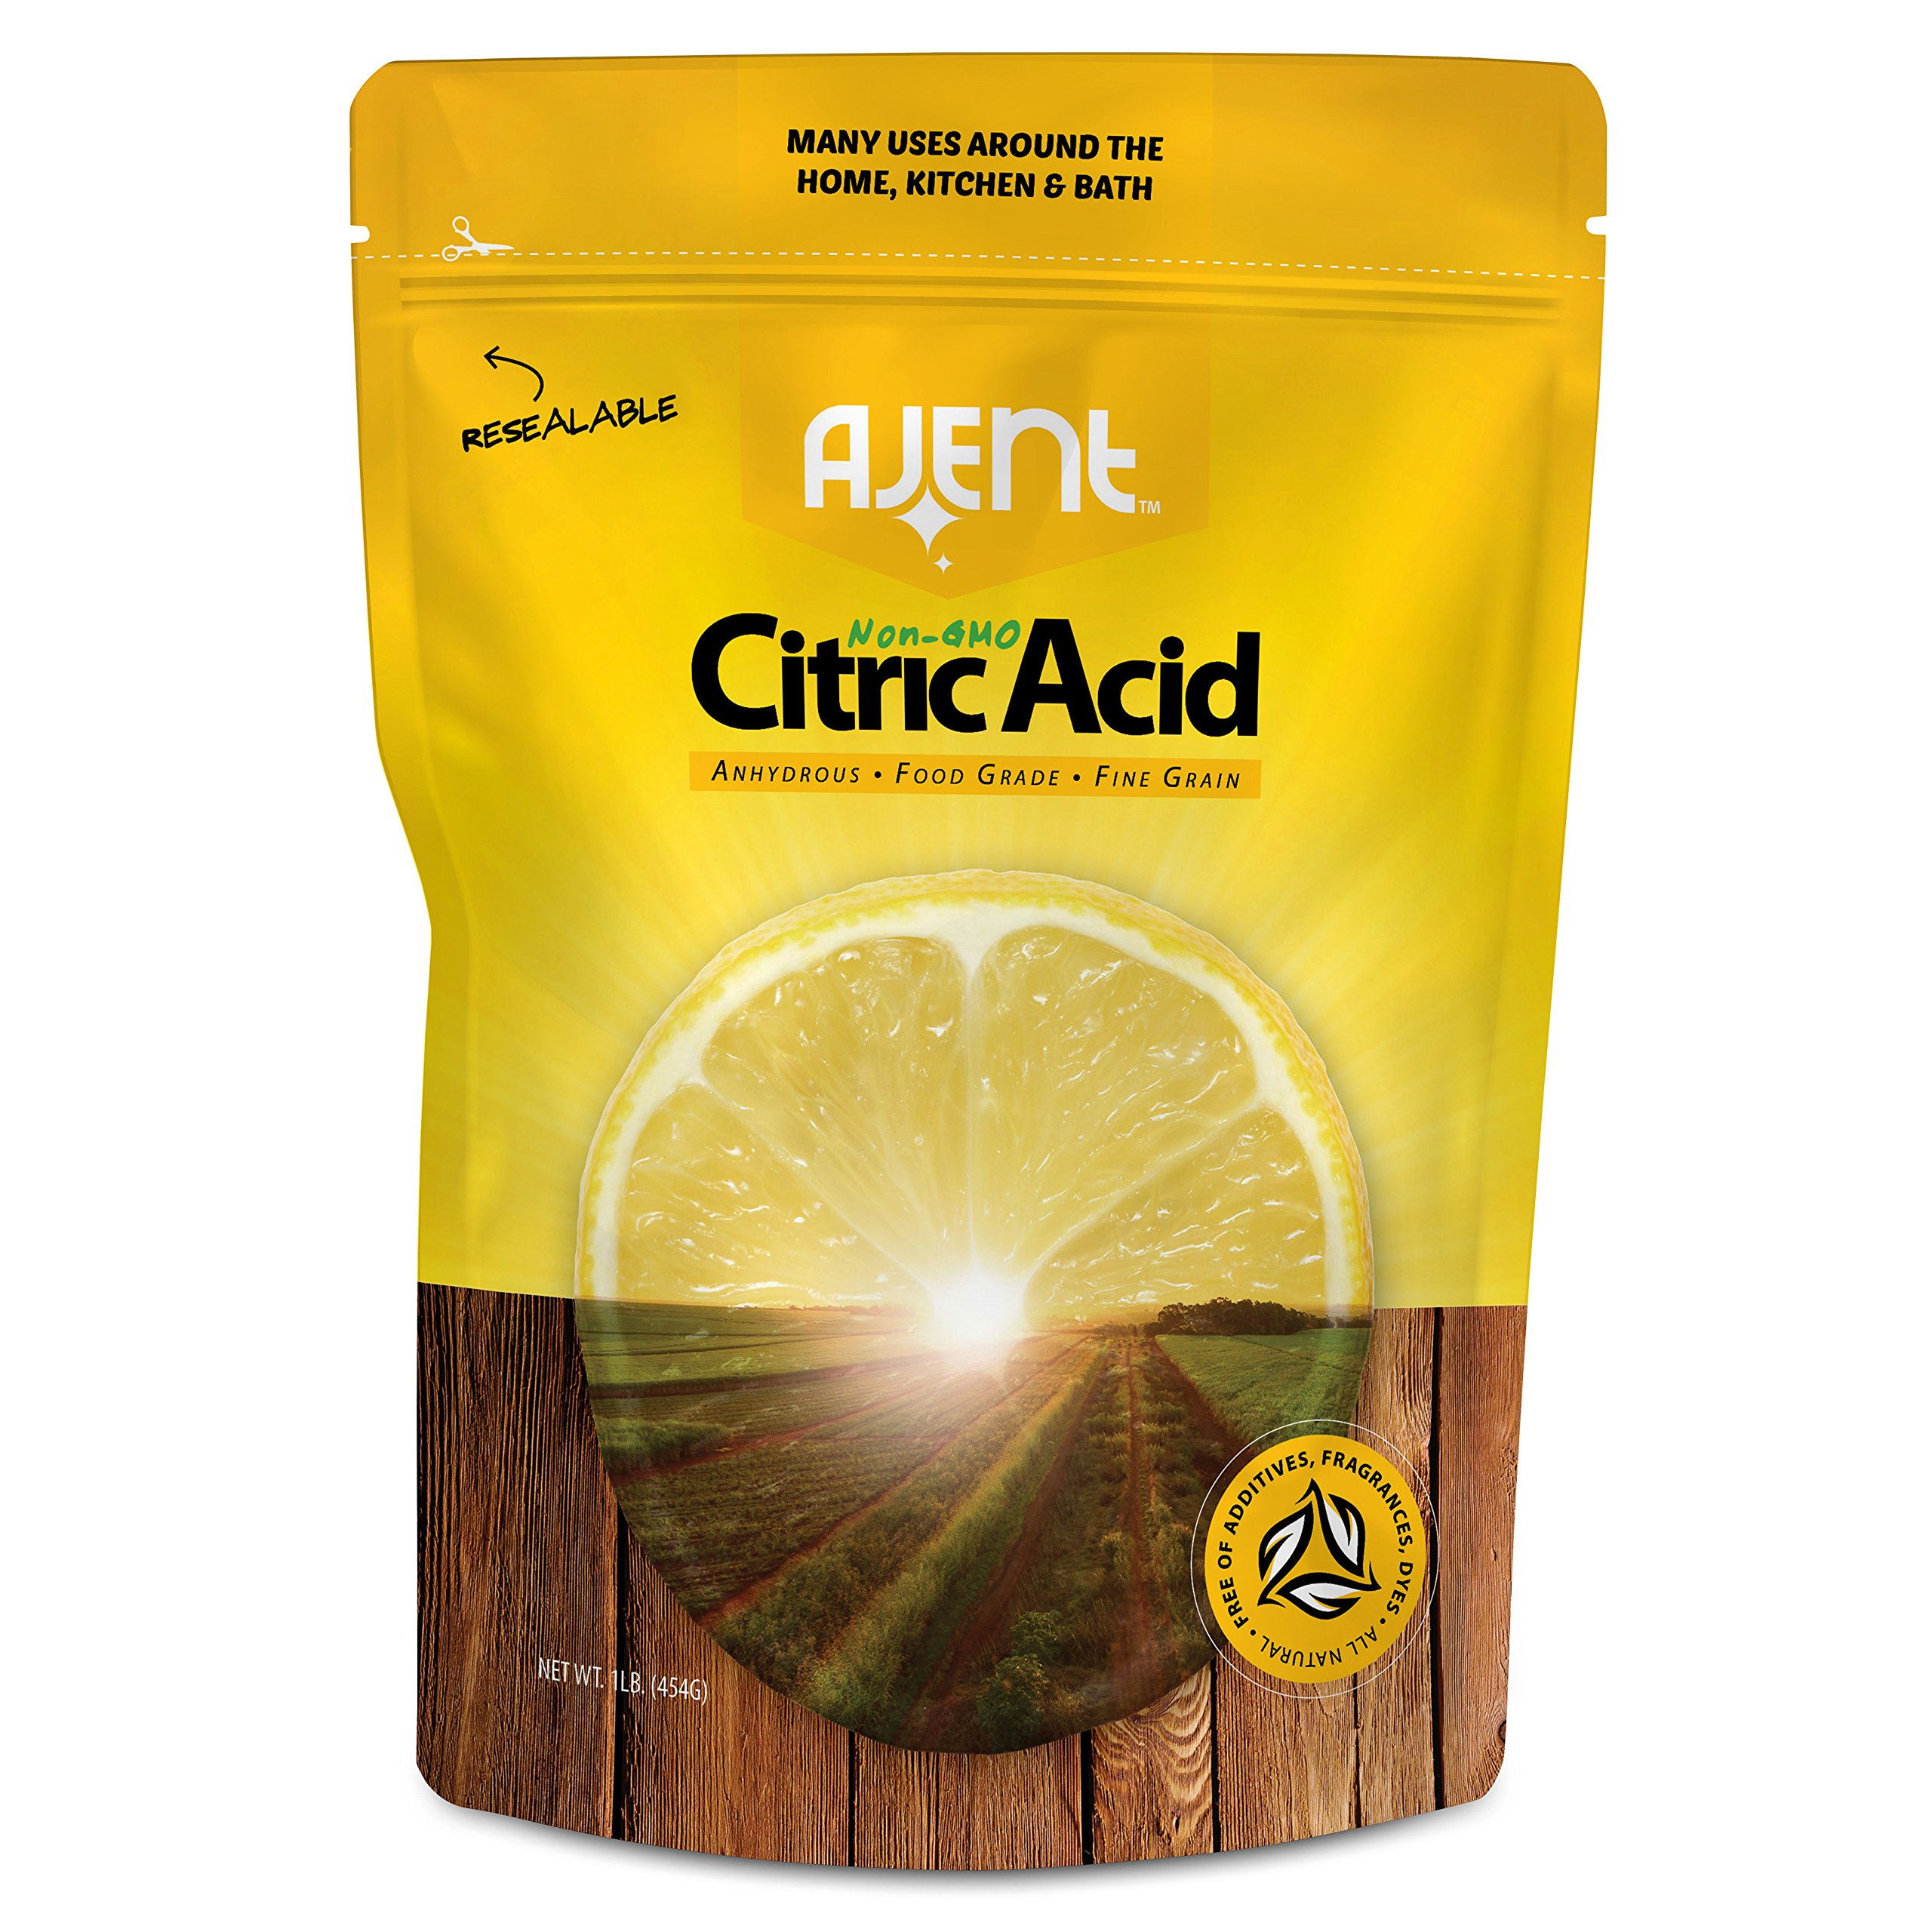 Ajent Citric Acid 100% Pure Food Grade Non-GMO (Approved for Organic Foods) 1 Pound